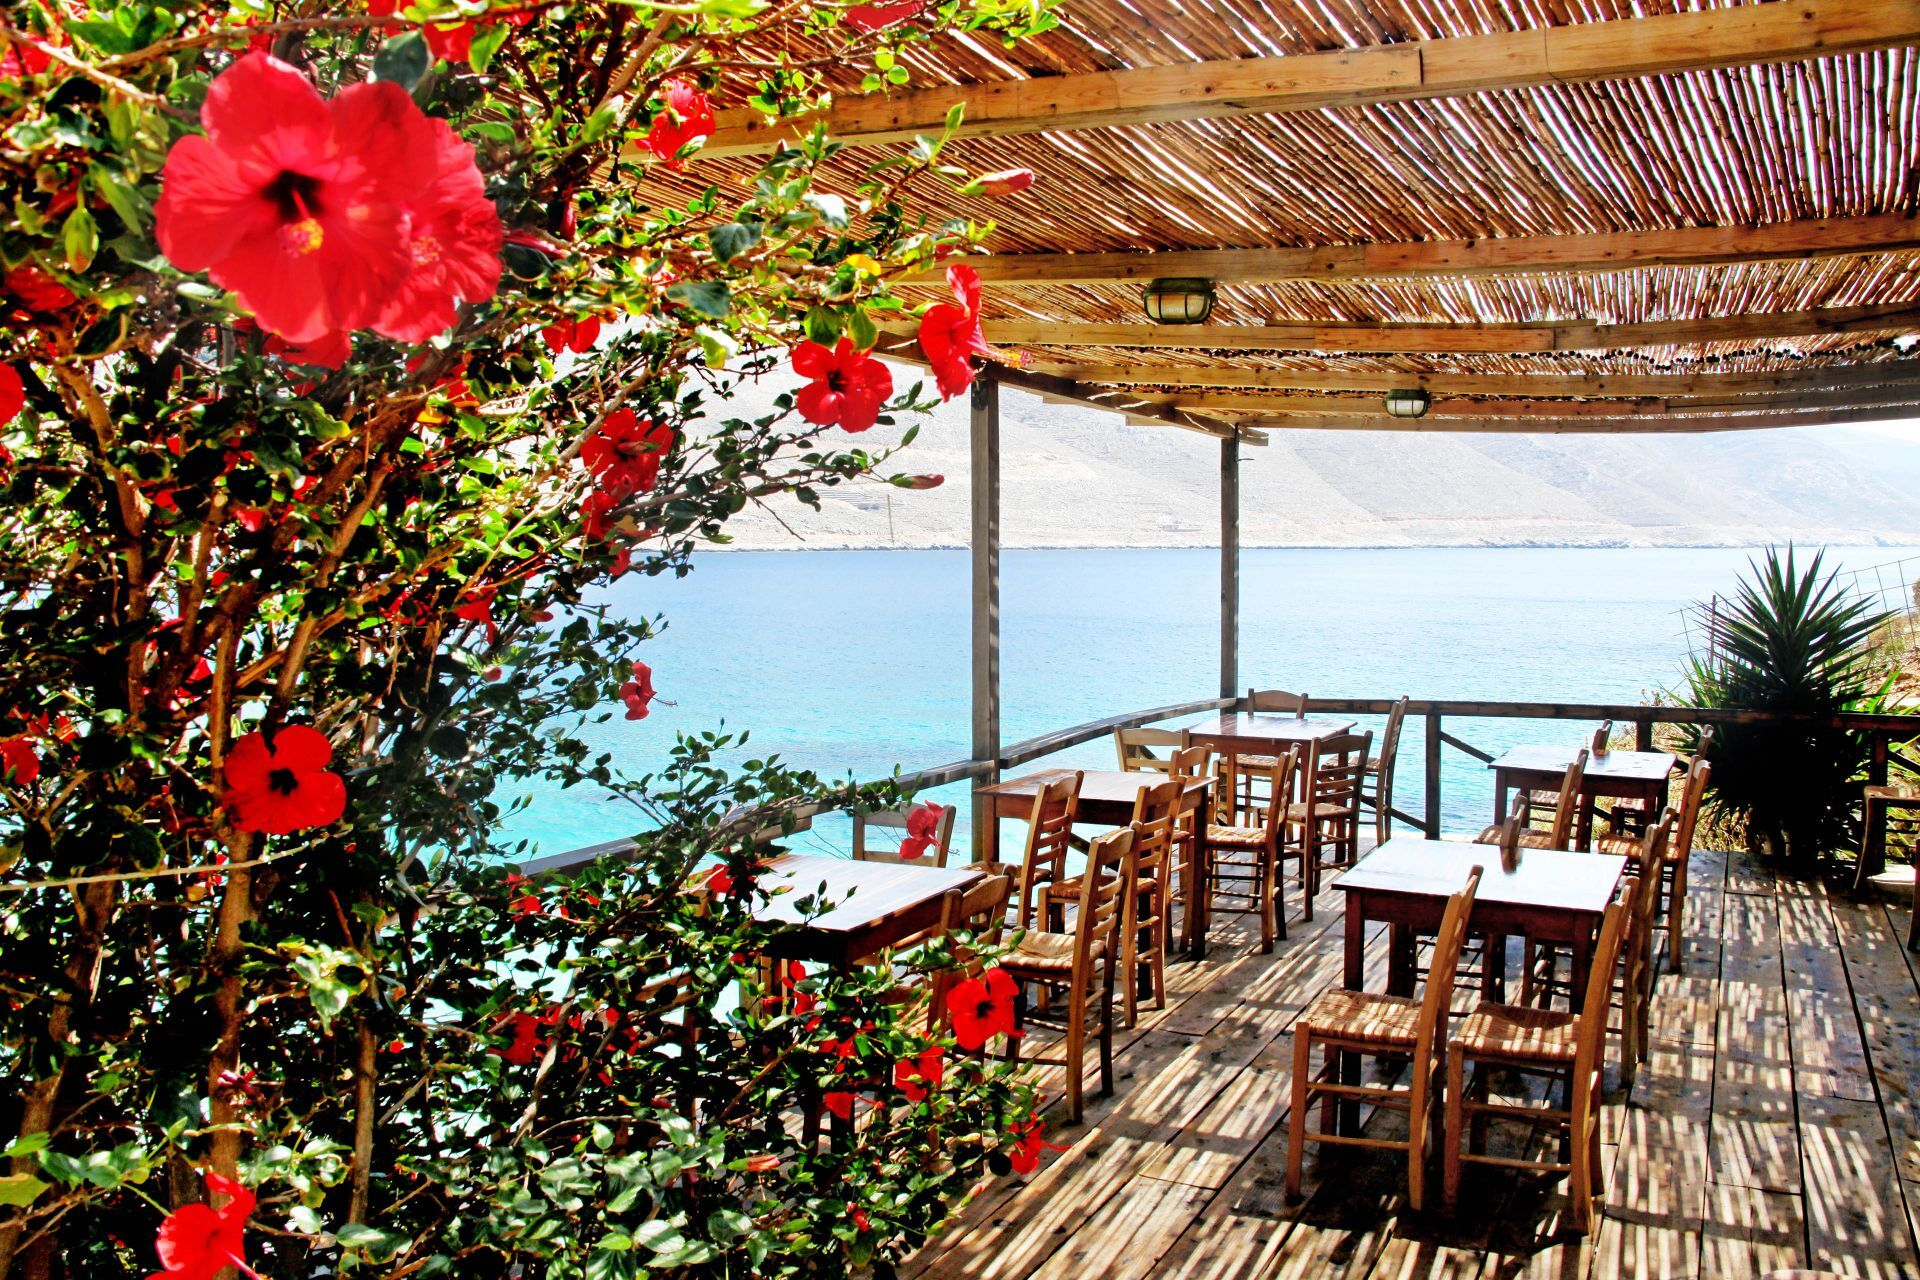 Places to eat and drink in Amorgos